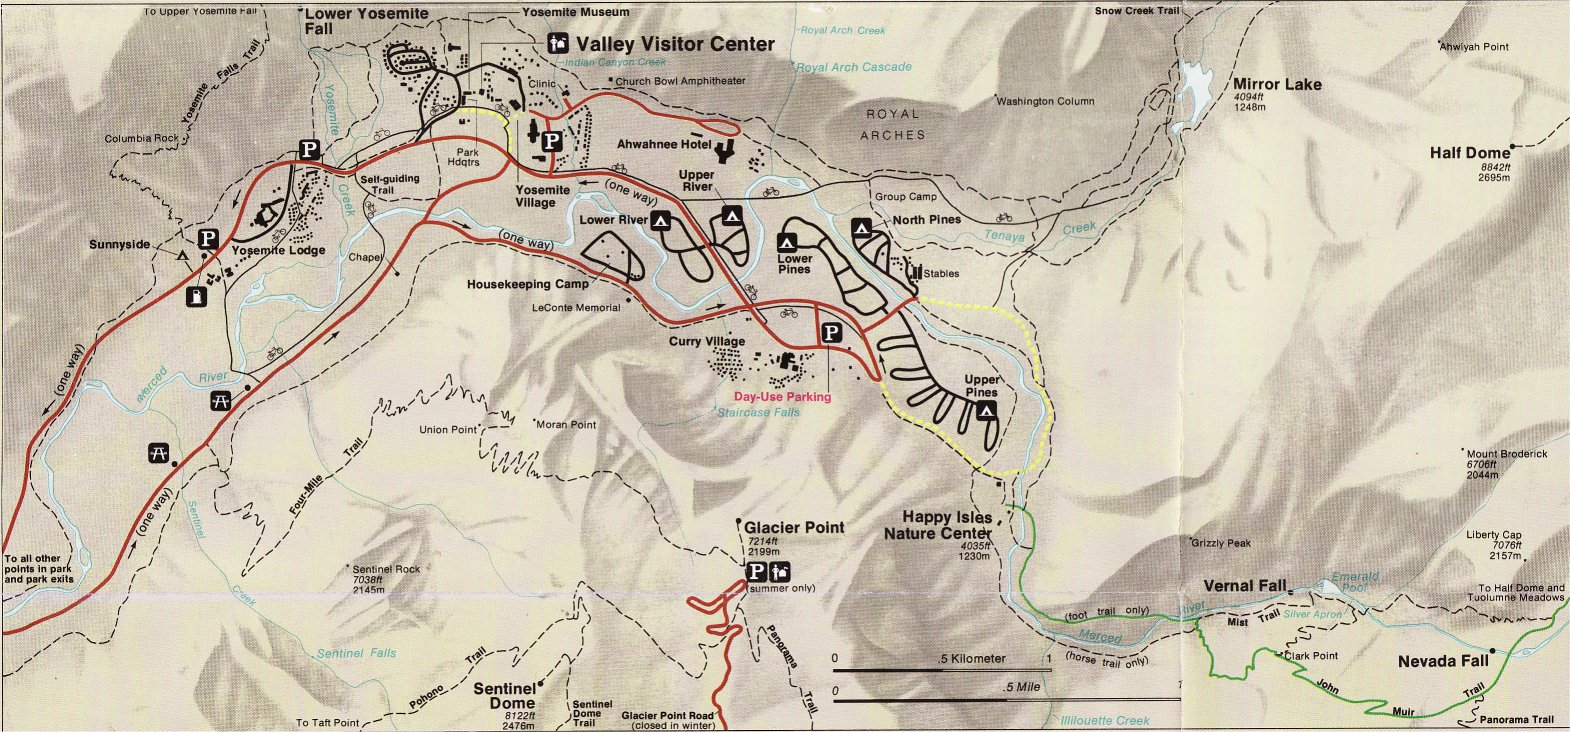 Yosemite Historic Maps (Yosemite Liry Online) on map of orlando attractions, map of usa attractions, map of yellowstone attractions, map of venice attractions, map of hollywood attractions, map of disneyland attractions,